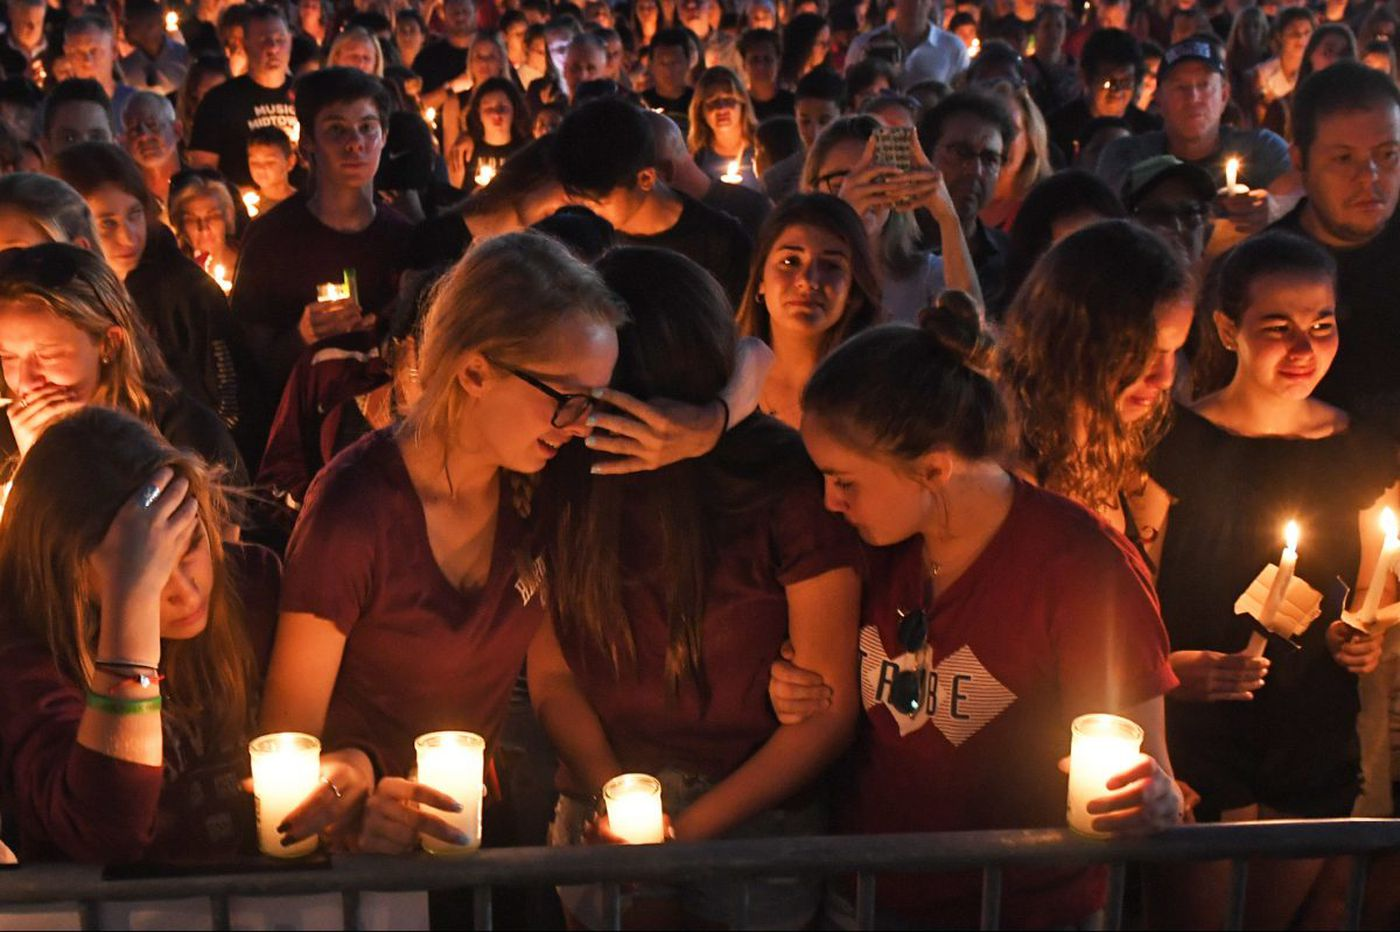 After Parkland shooting, mental health reform must be discussed | Christine Flowers